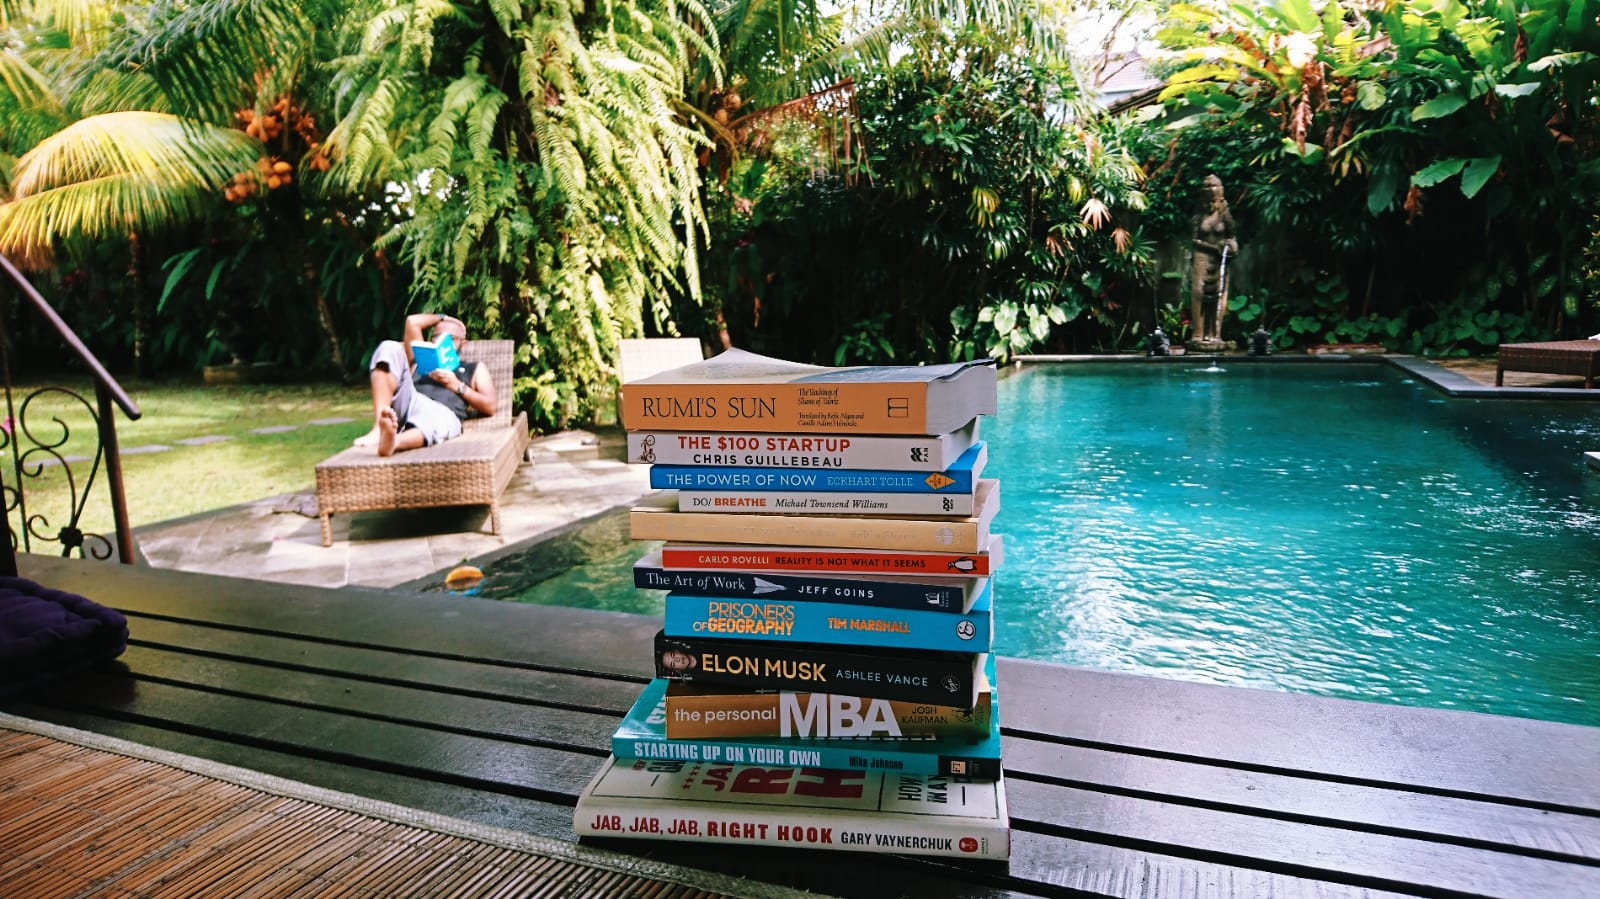 Read think and travel, a travel blog. A pile of 20 books for holidays in Bali, with a man reading a book near a swimming pool in the background